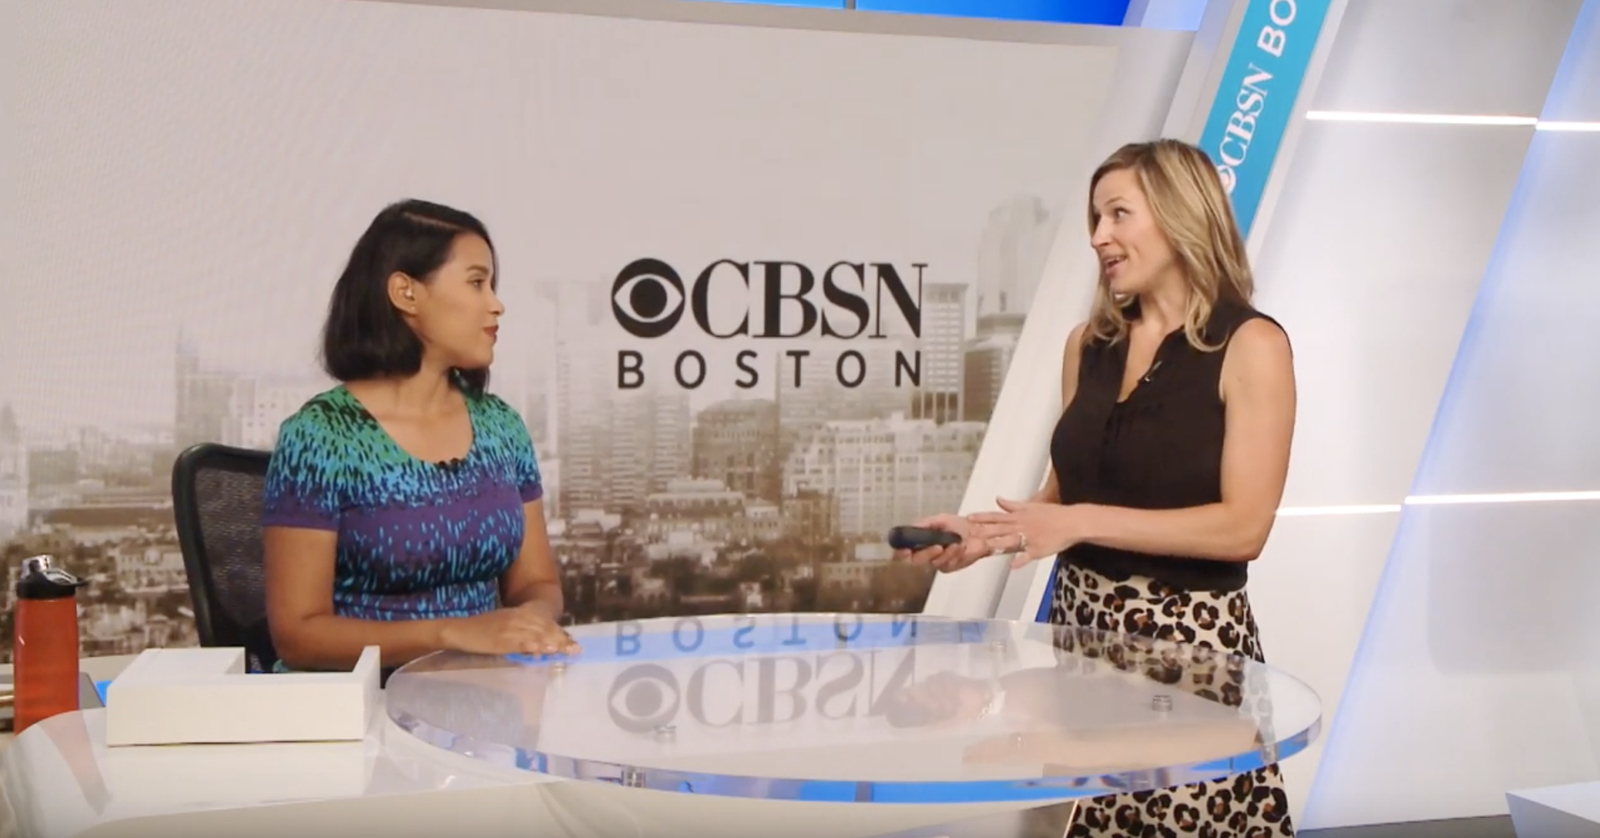 NCS_CBSN-Boston_Studio_007